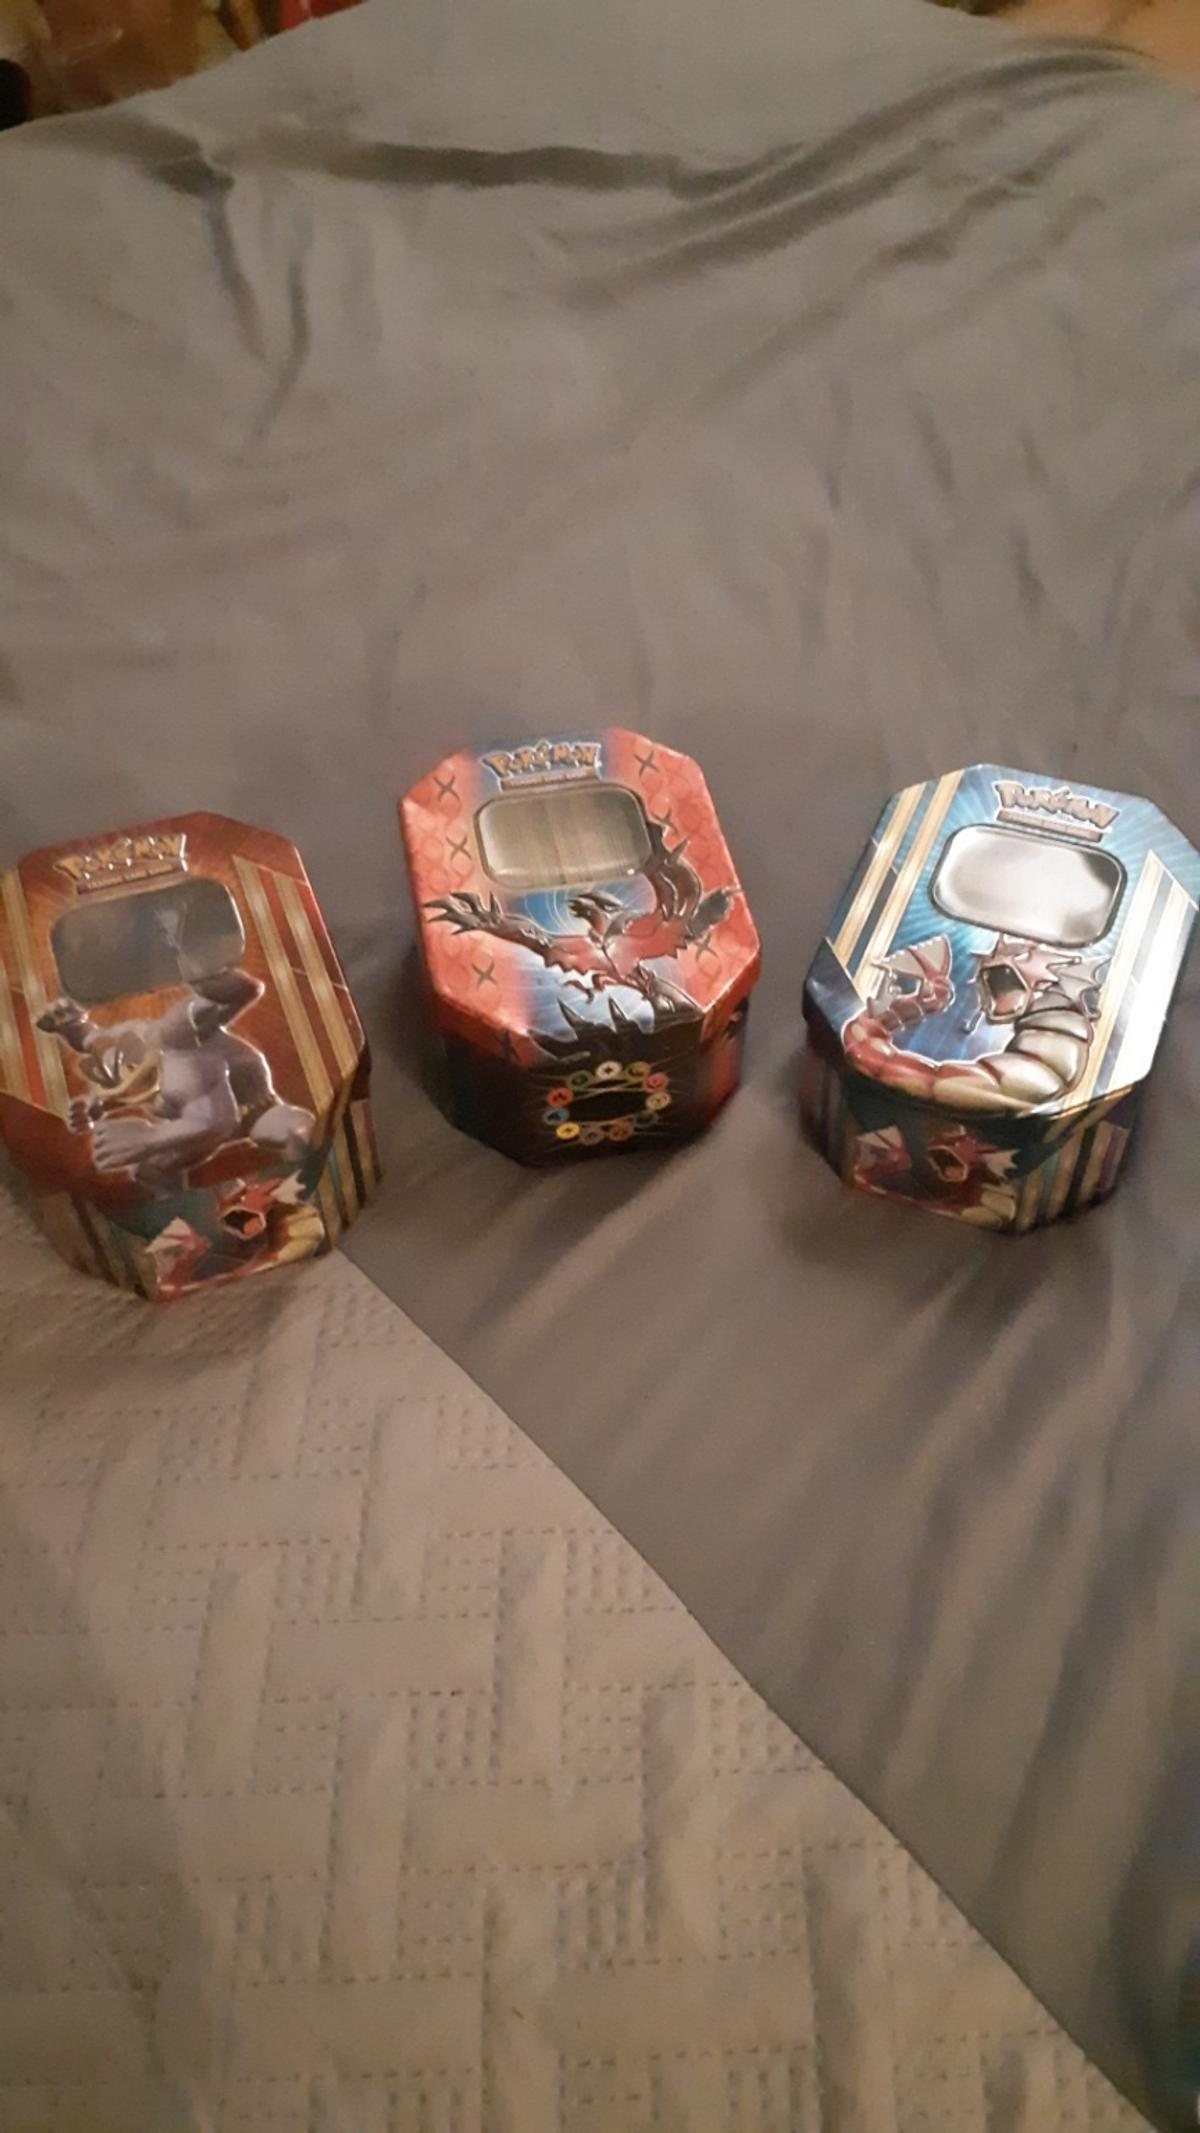 3 tins with lots of pokemon cards. pokemon game sheet with pokemon coins and rare cards